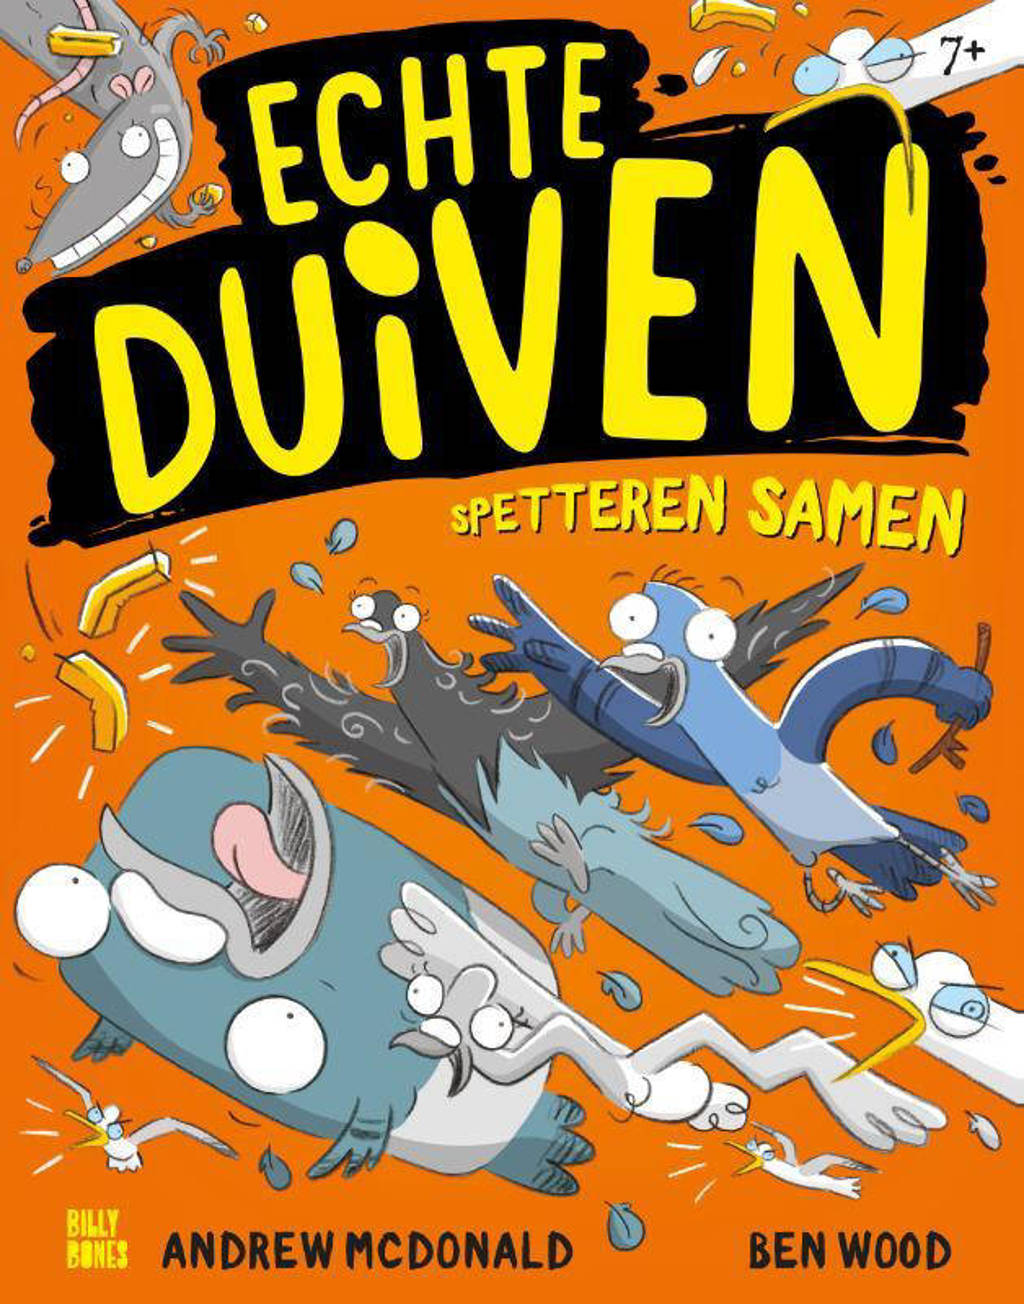 Echte Duiven spetteren samen, Real Pigeons, Book 4, Orange, Pigeons, Humour, Children's Books, Short Stories, Illustrations, Ben Wood, Fries, Rat